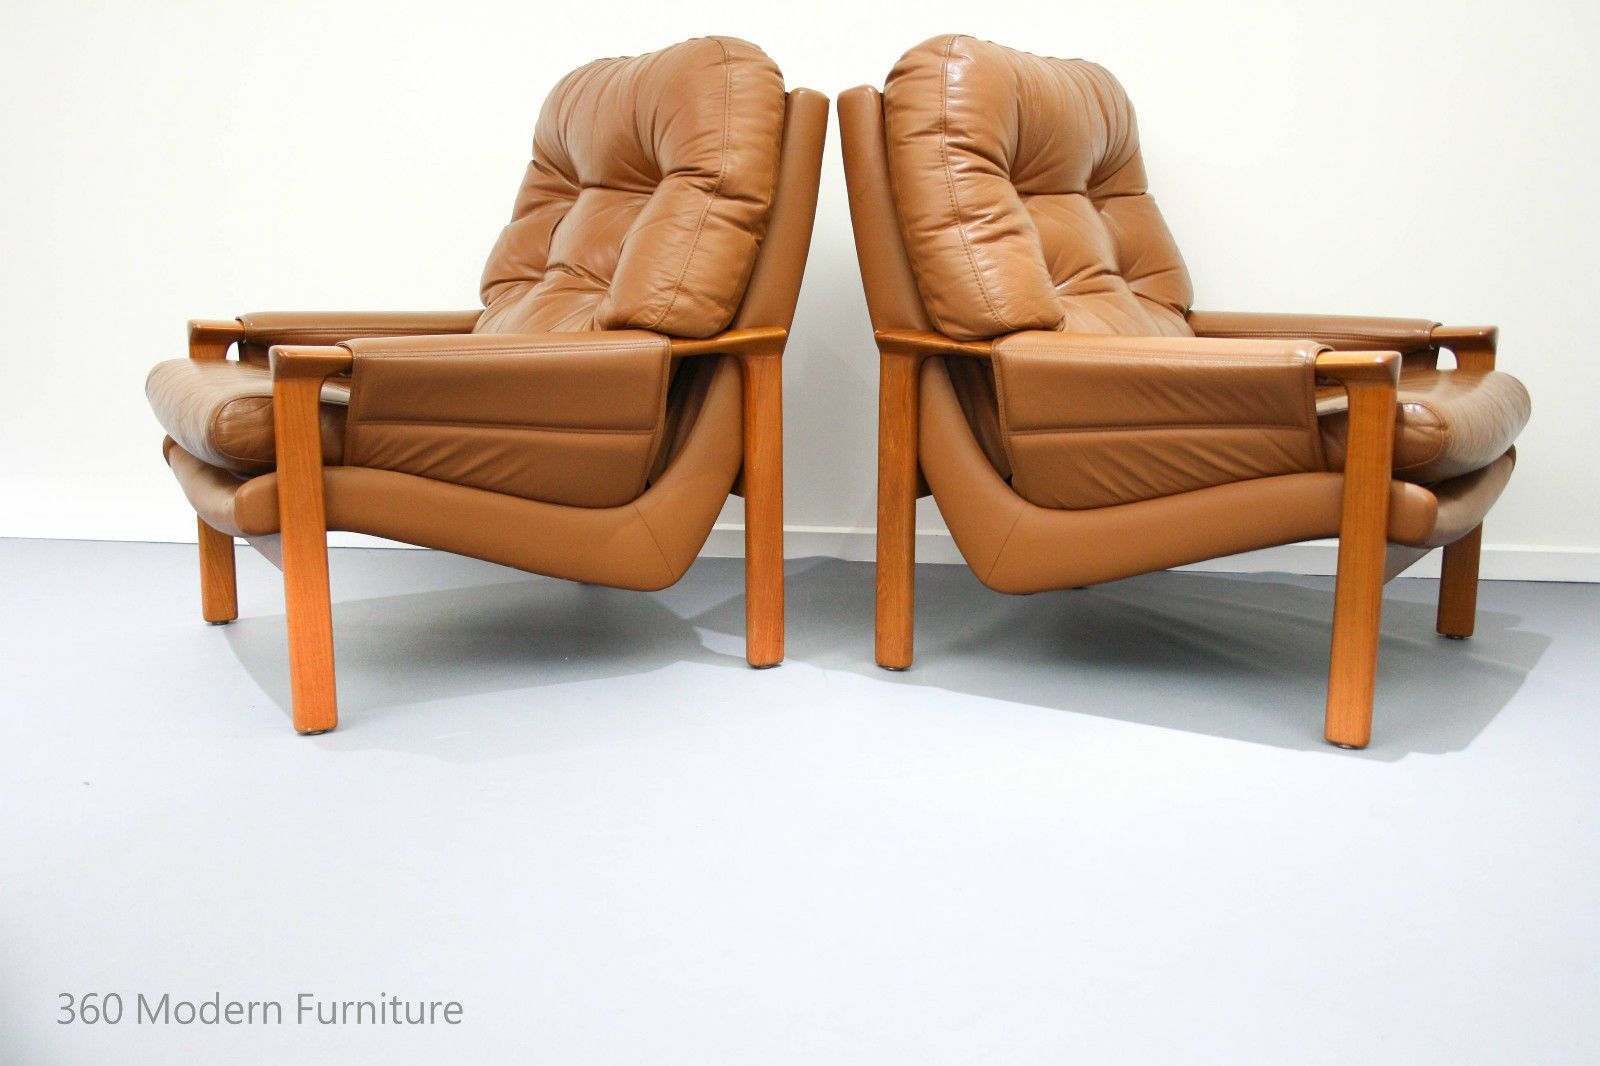 Awesome Tessa Leather 3 Seater 2 Armchairs Retro Vintage Lounge Caraccident5 Cool Chair Designs And Ideas Caraccident5Info